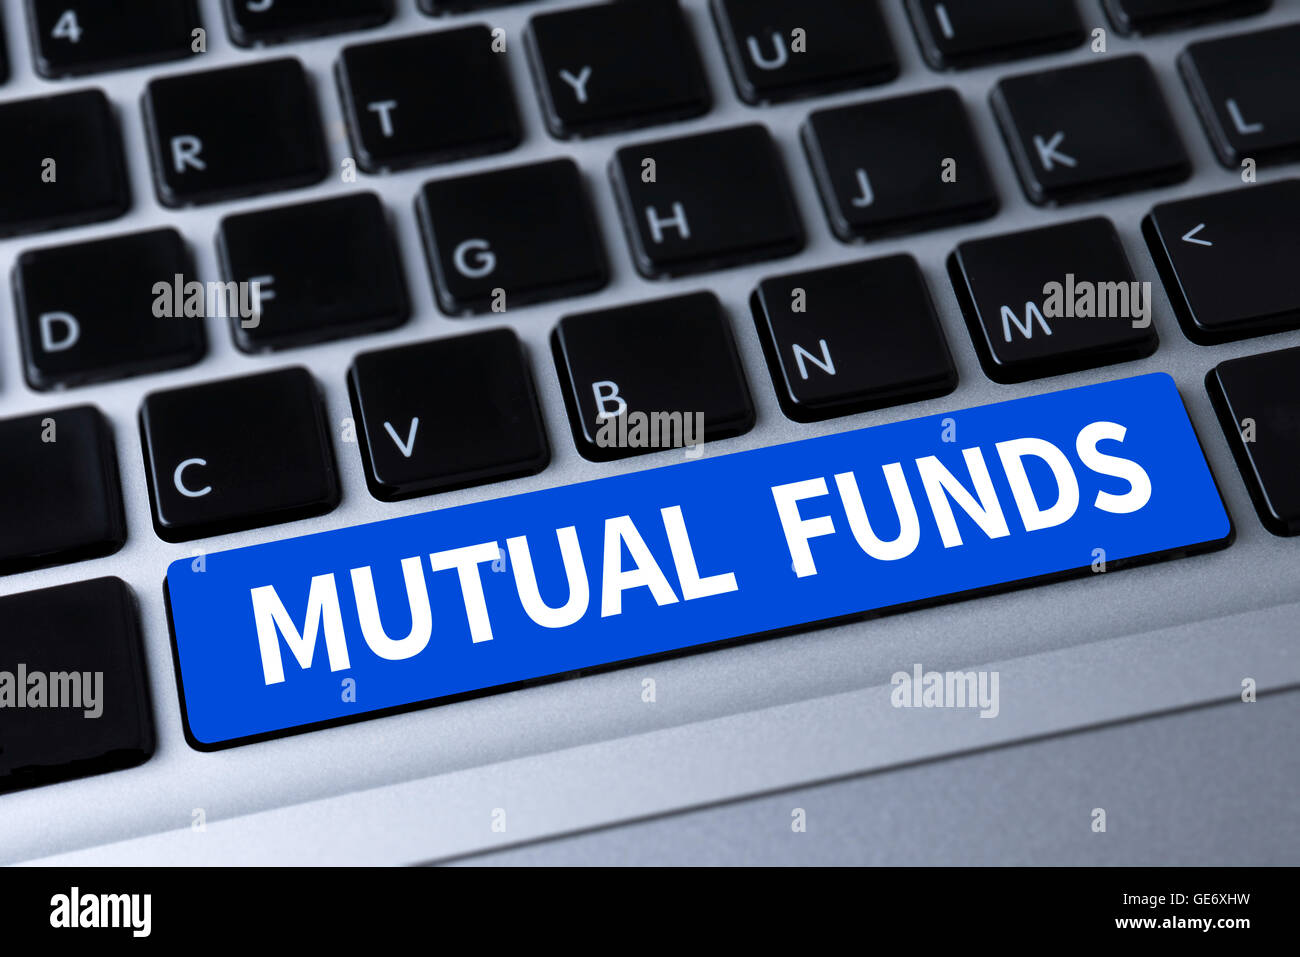 MUTUAL FUNDS a message on keyboard - Stock Image